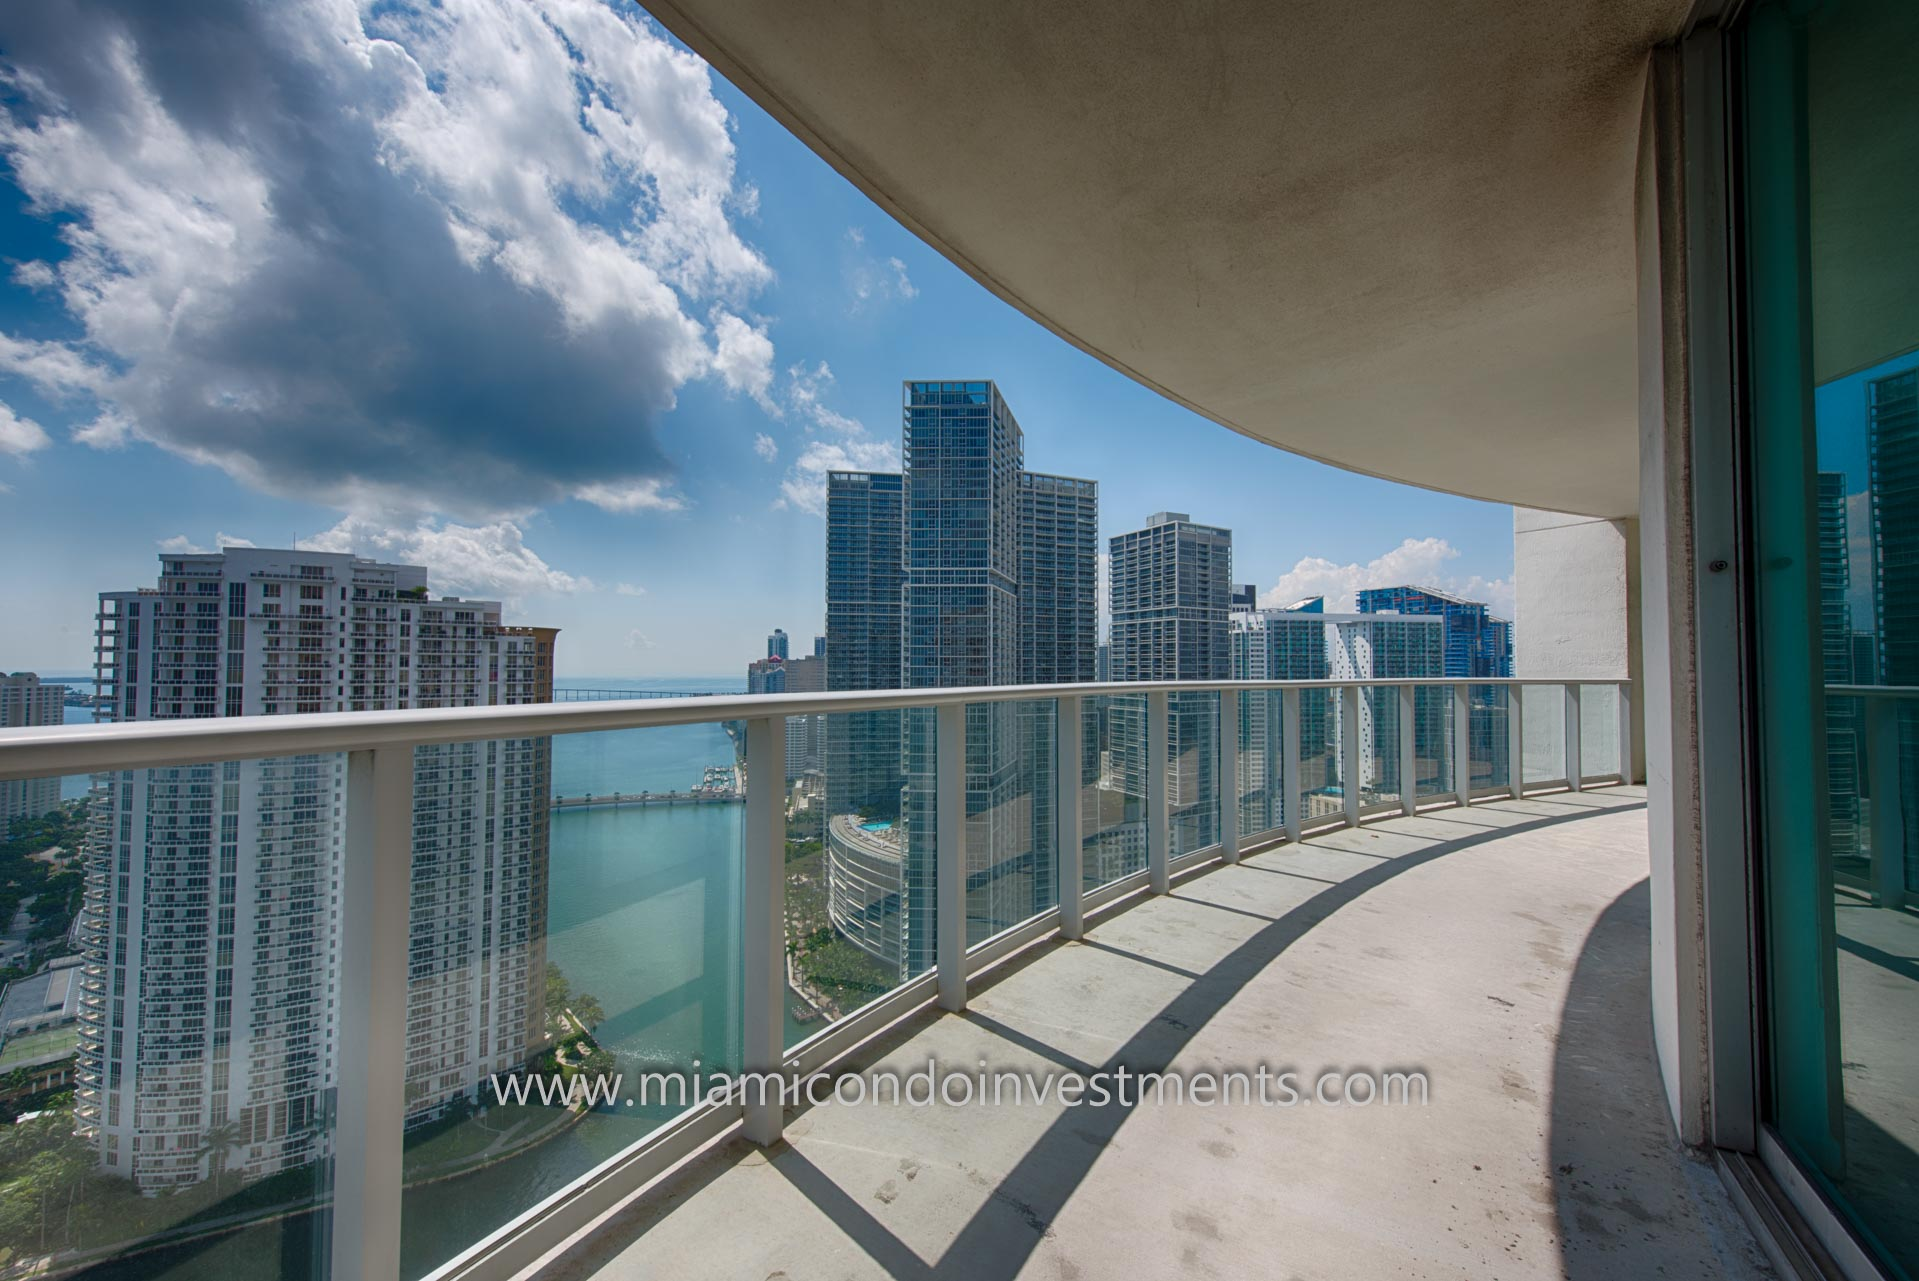 views of the Miami River, Brickell, Brickell Key, and Biscayne Bay from the balcony